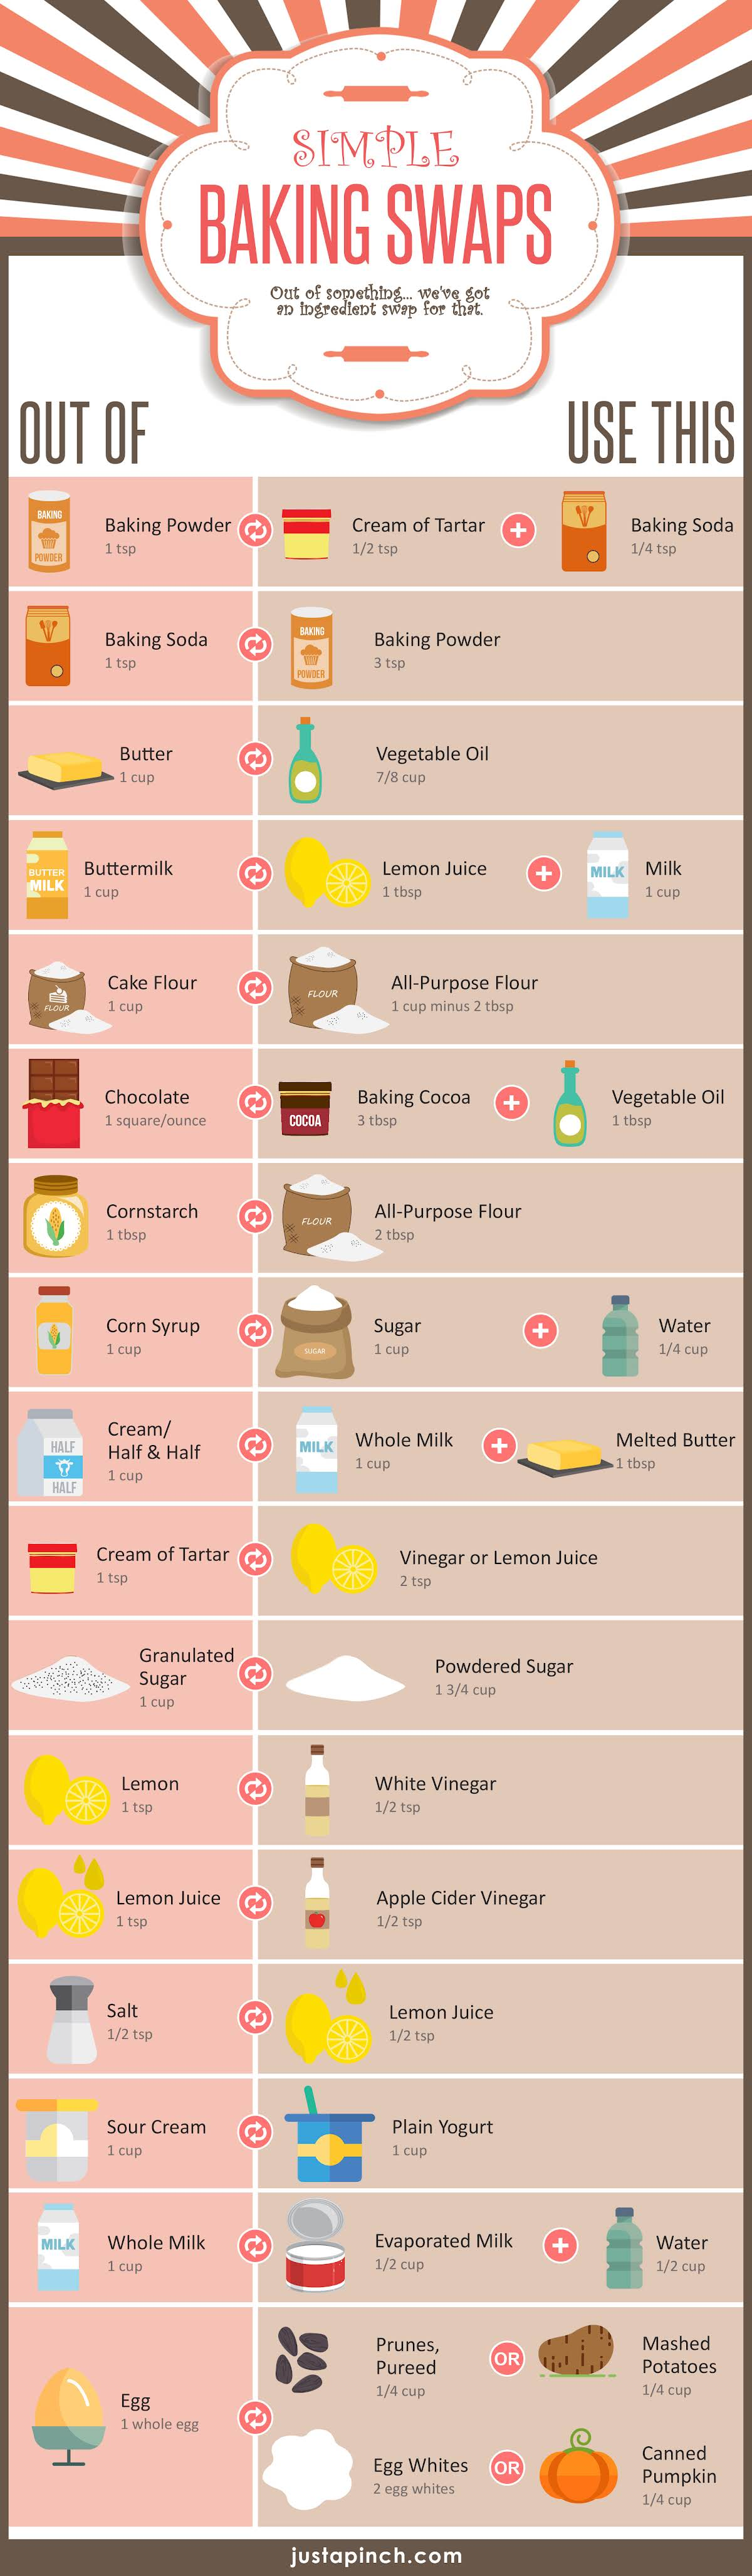 Simple Baking Swaps